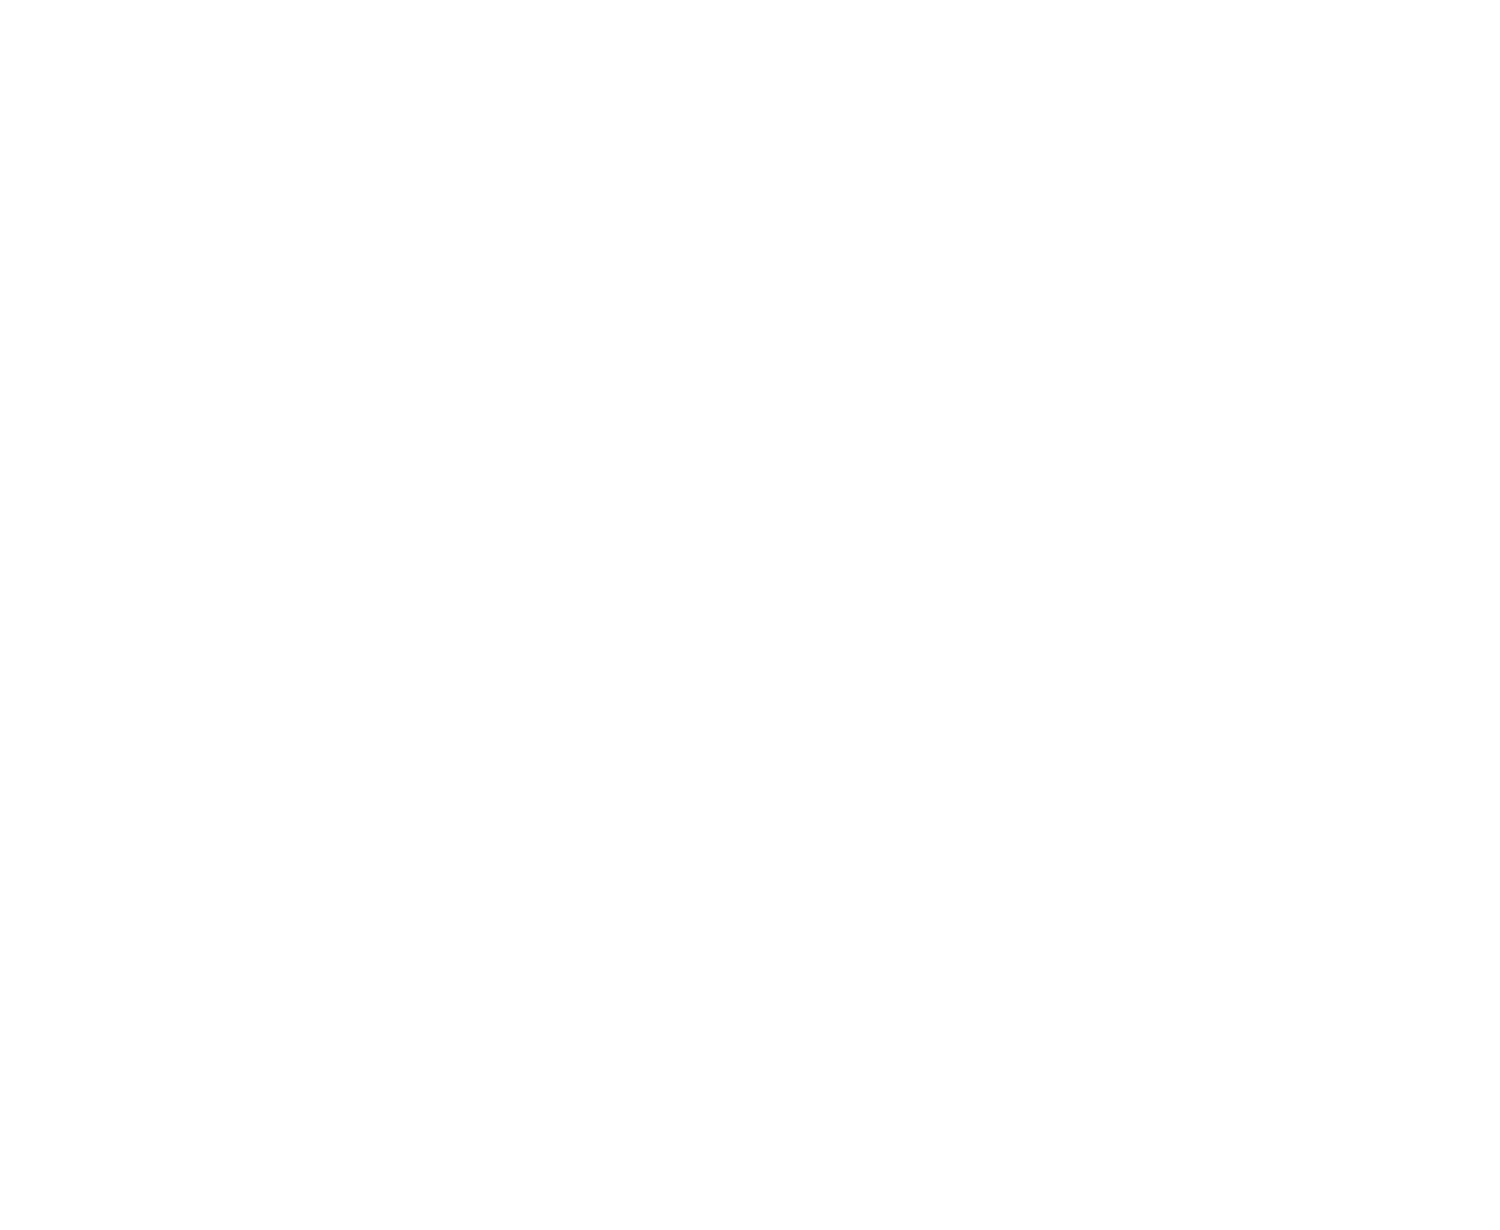 Treasure Isle Park